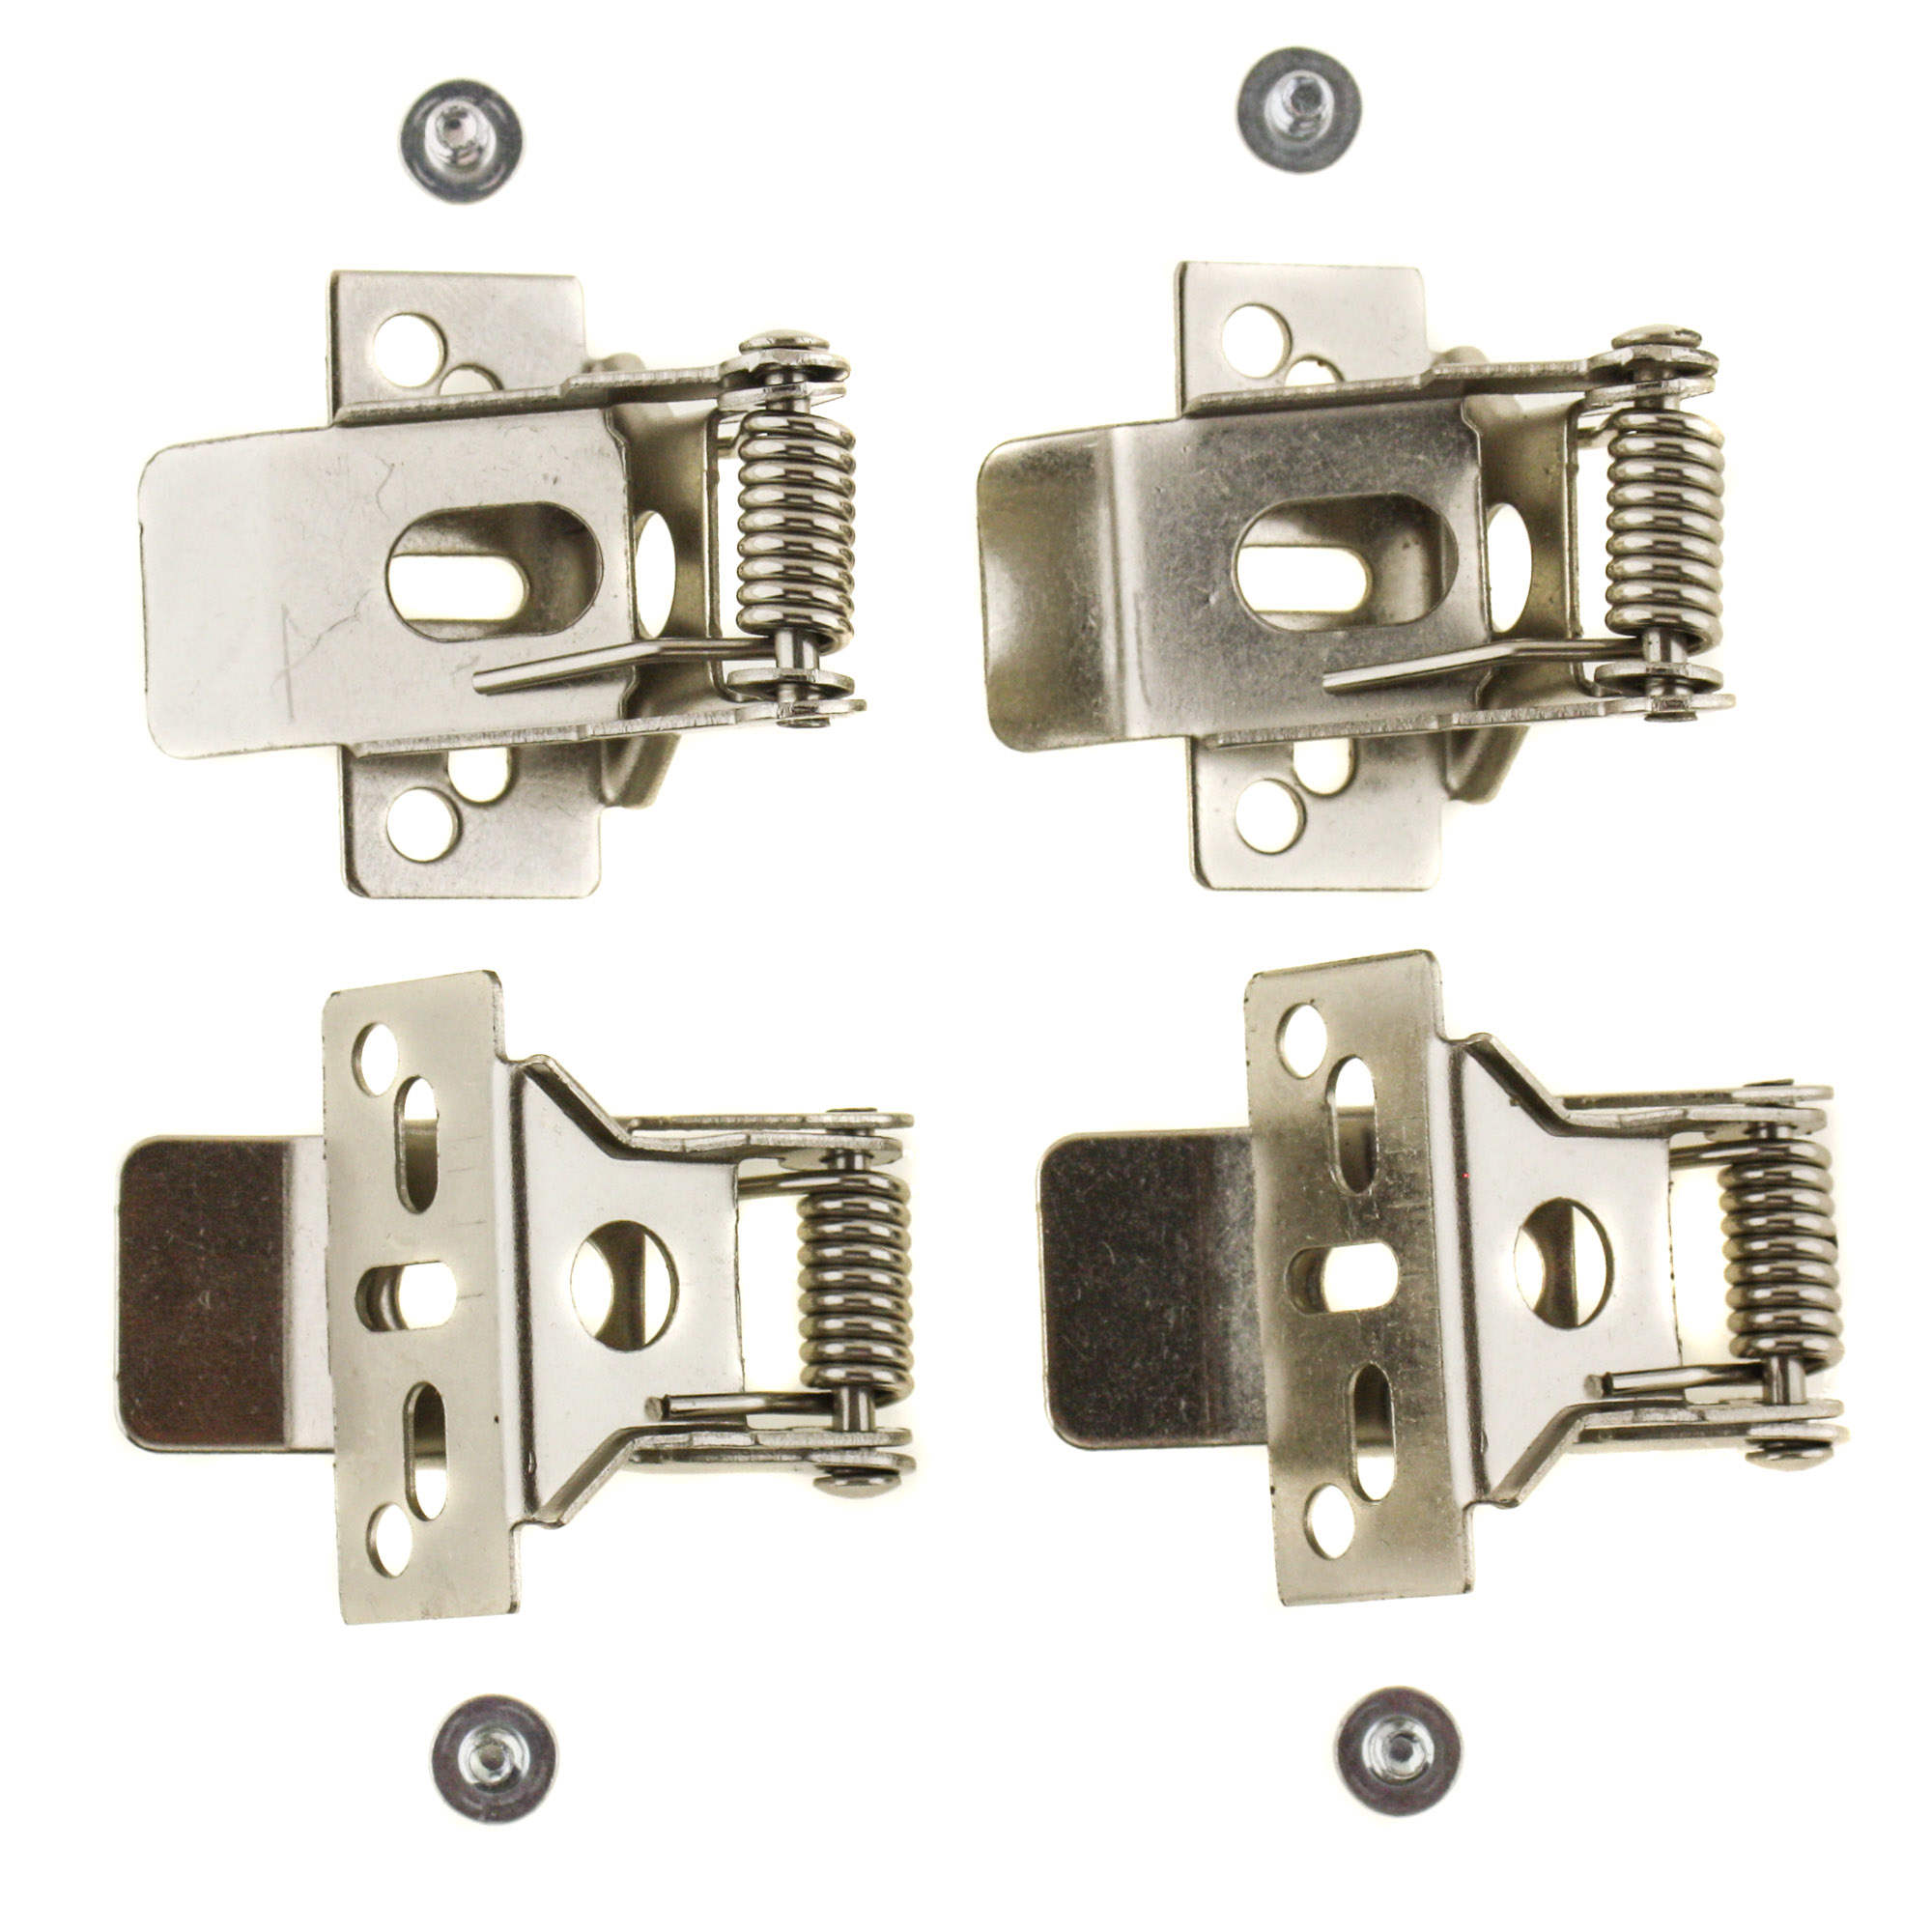 Mounting clips for led panels (4 pcs.)